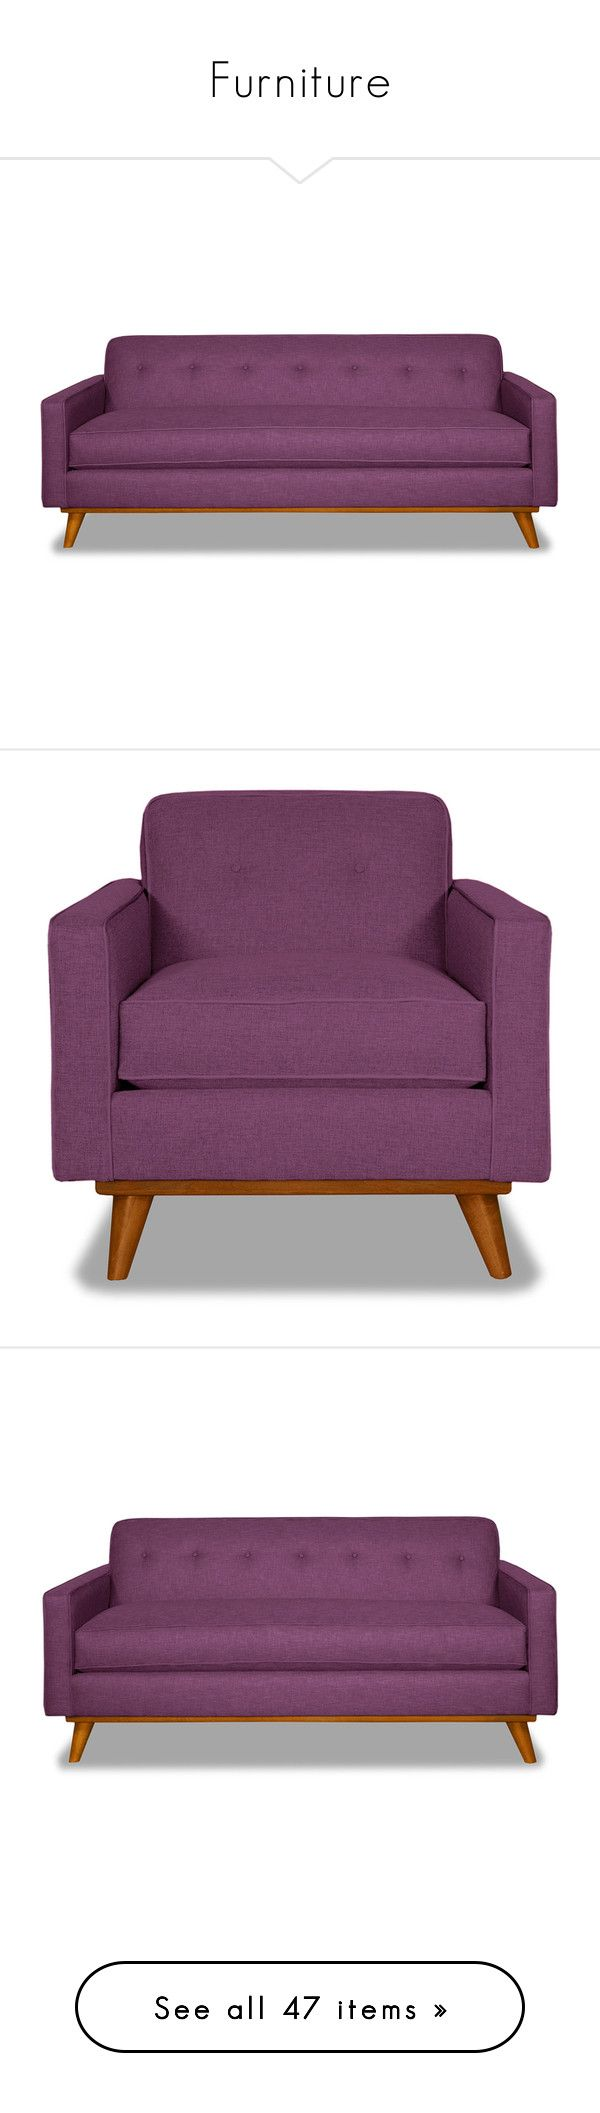 """Furniture"" by scarletj17 ❤ liked on Polyvore featuring home, furniture, sofas, midcentury modern sofa, purple furniture, purple couch, mid-century modern furniture, midcentury furniture, chairs and accent chairs"